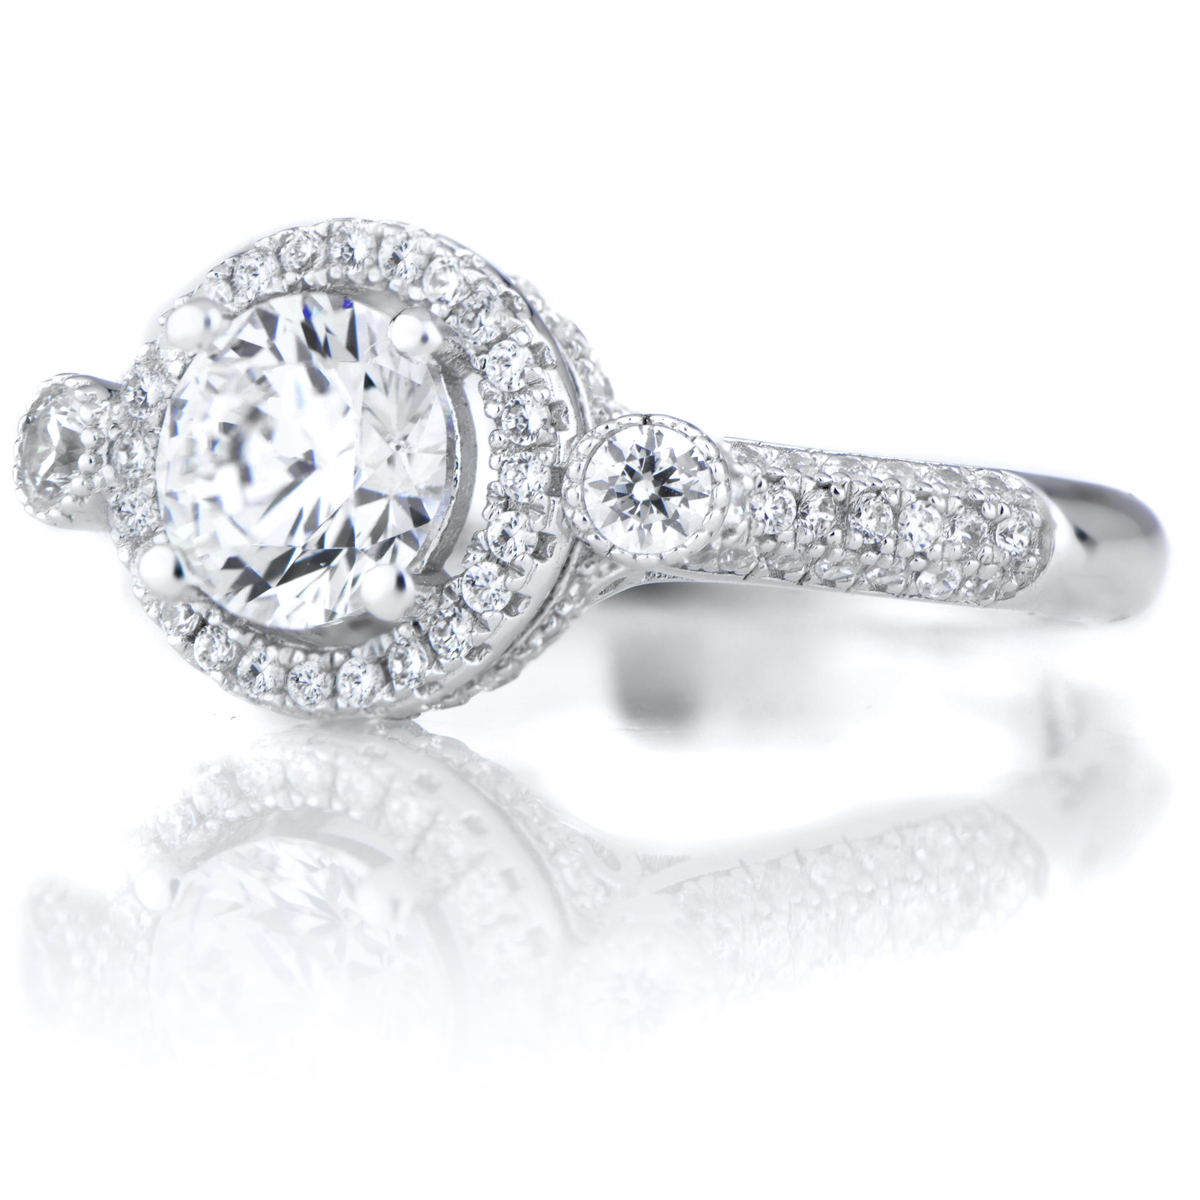 kallie s 1 25ct cz cut antique style engagement ring